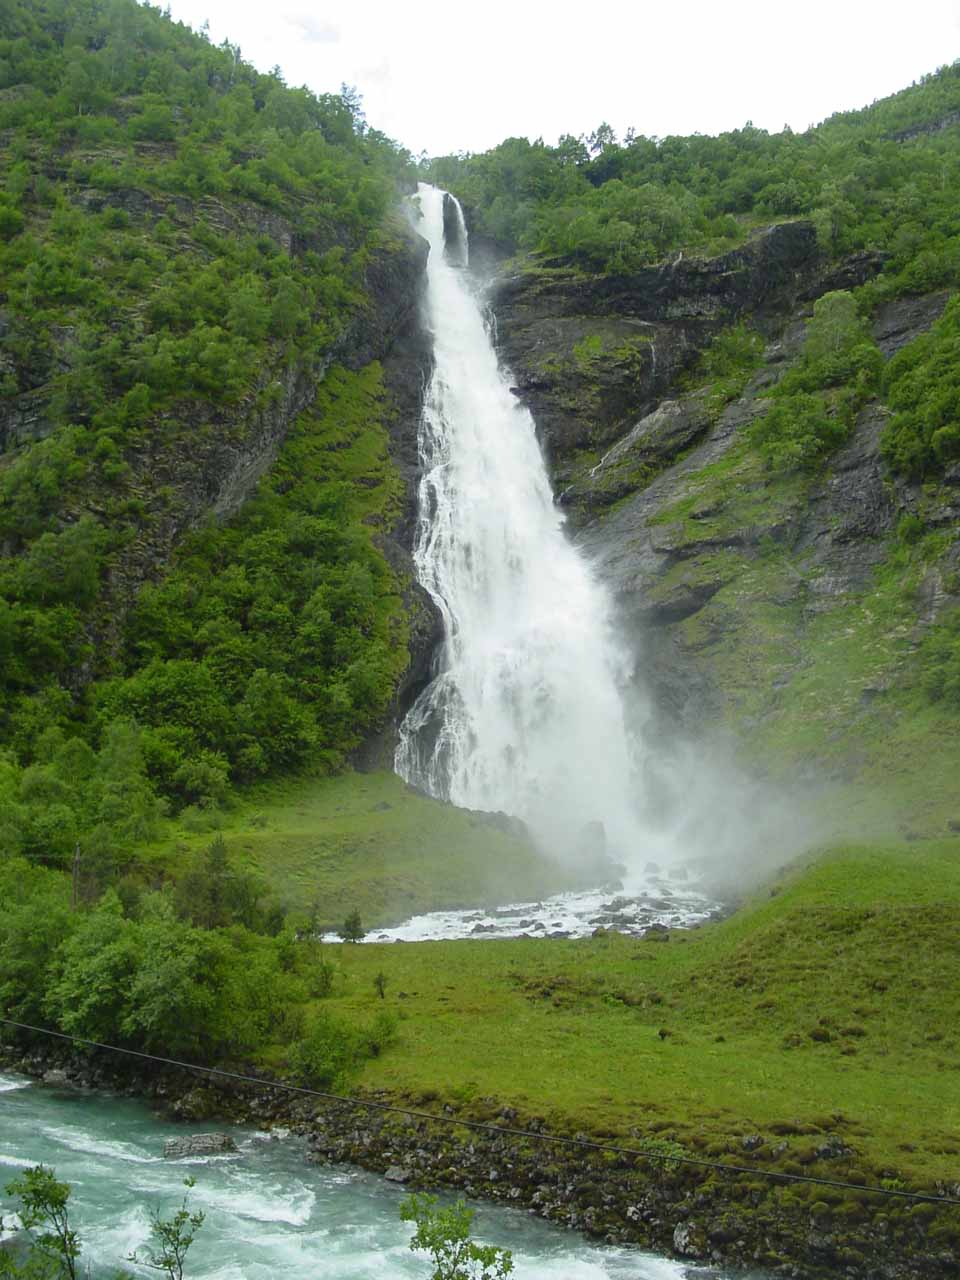 Another major waterfall that we would see later on while hiking into Utladalen was Avdalsfossen